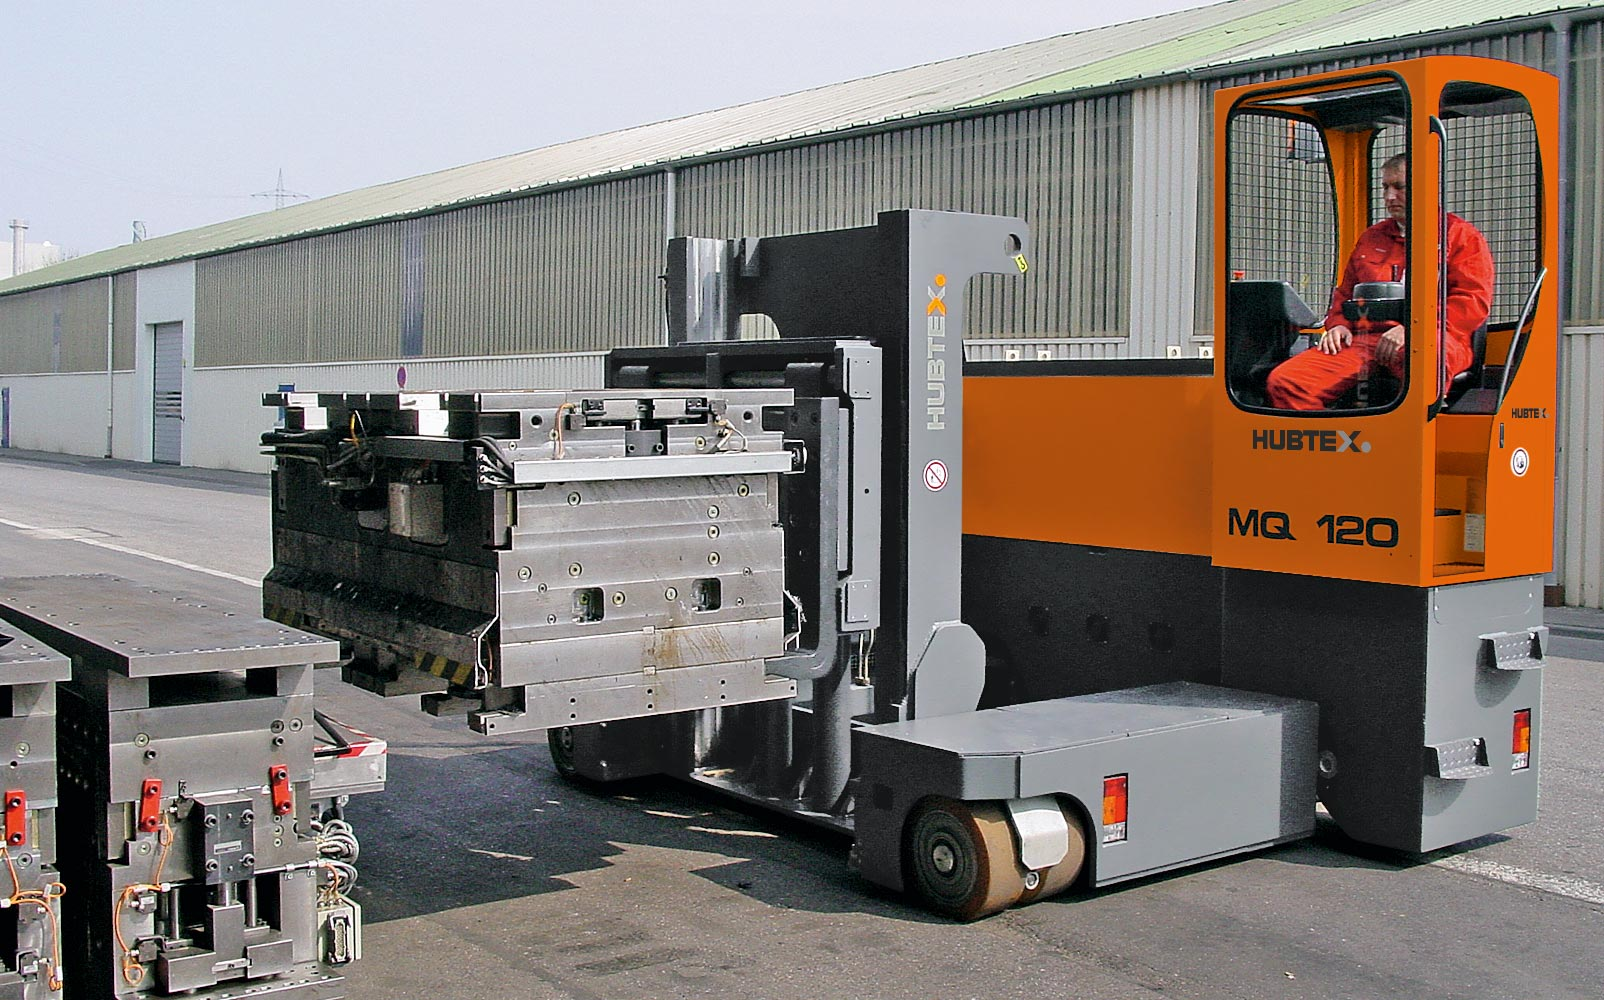 Hubtex Electric Multidirectional Sideloader MQ 120 carrying a die